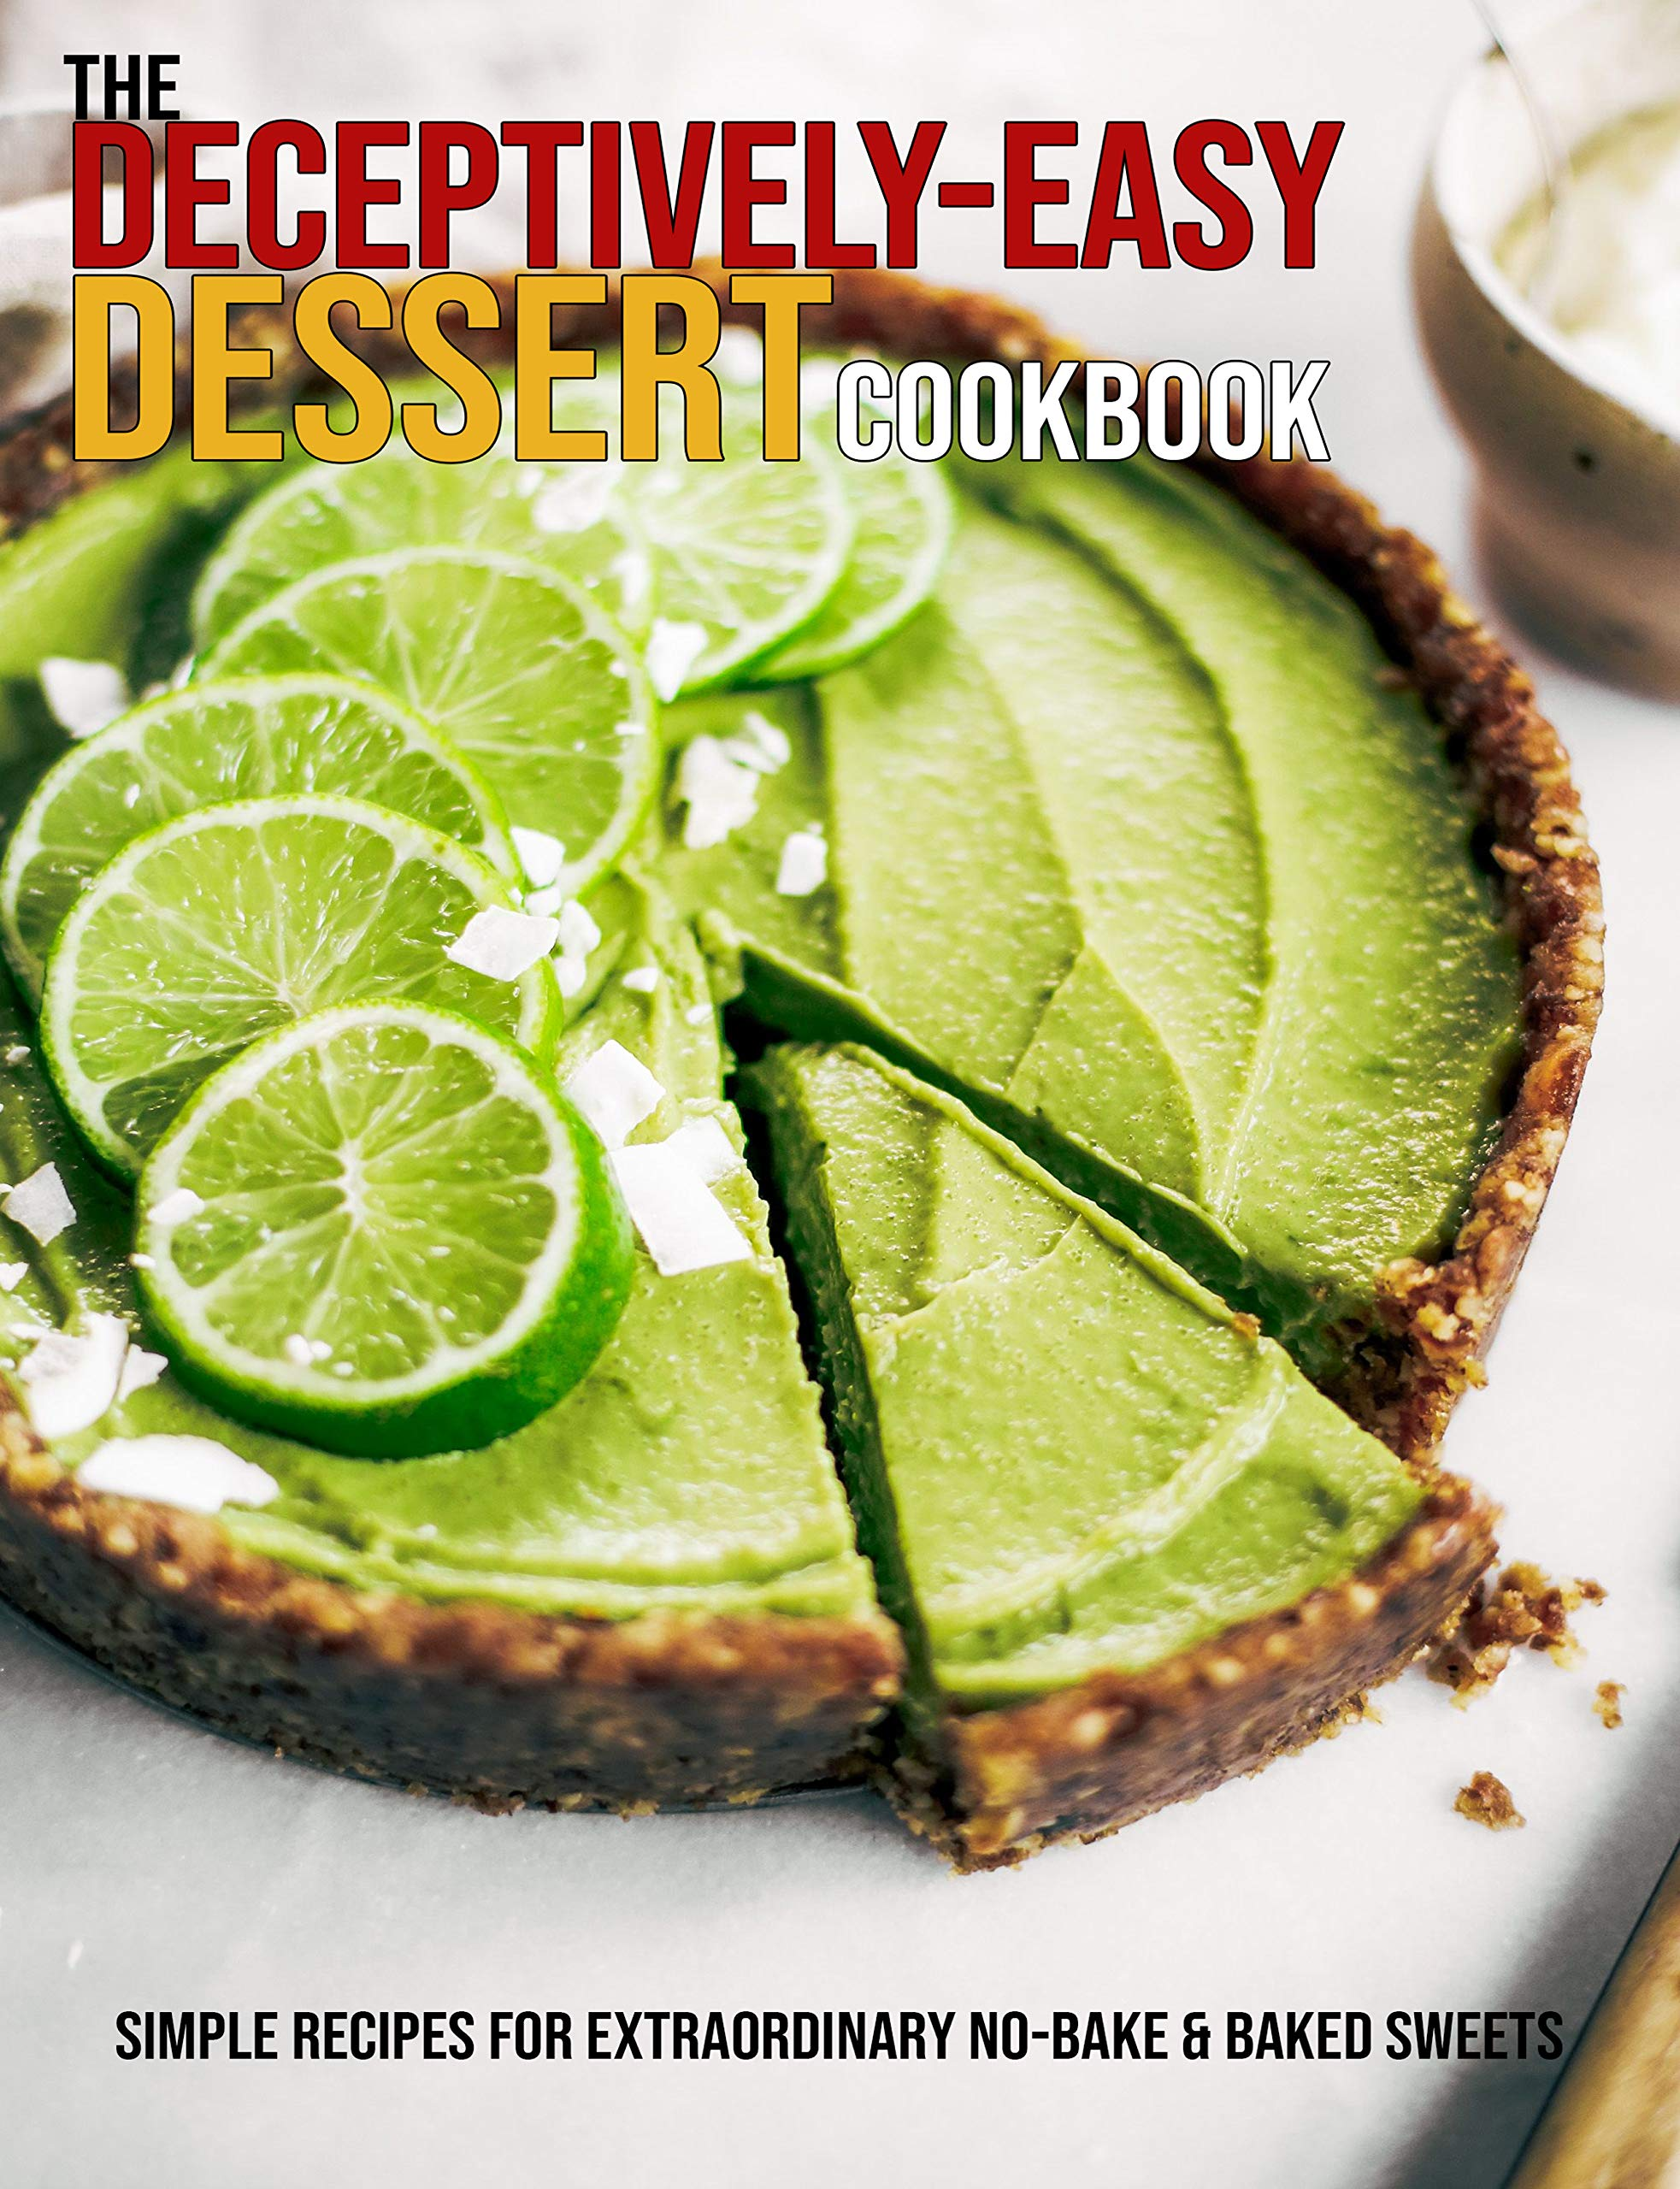 The Deceptively-Easy Dessert Cookbook: Simple Recipes For Extraordinary No-Bake & Baked Sweets